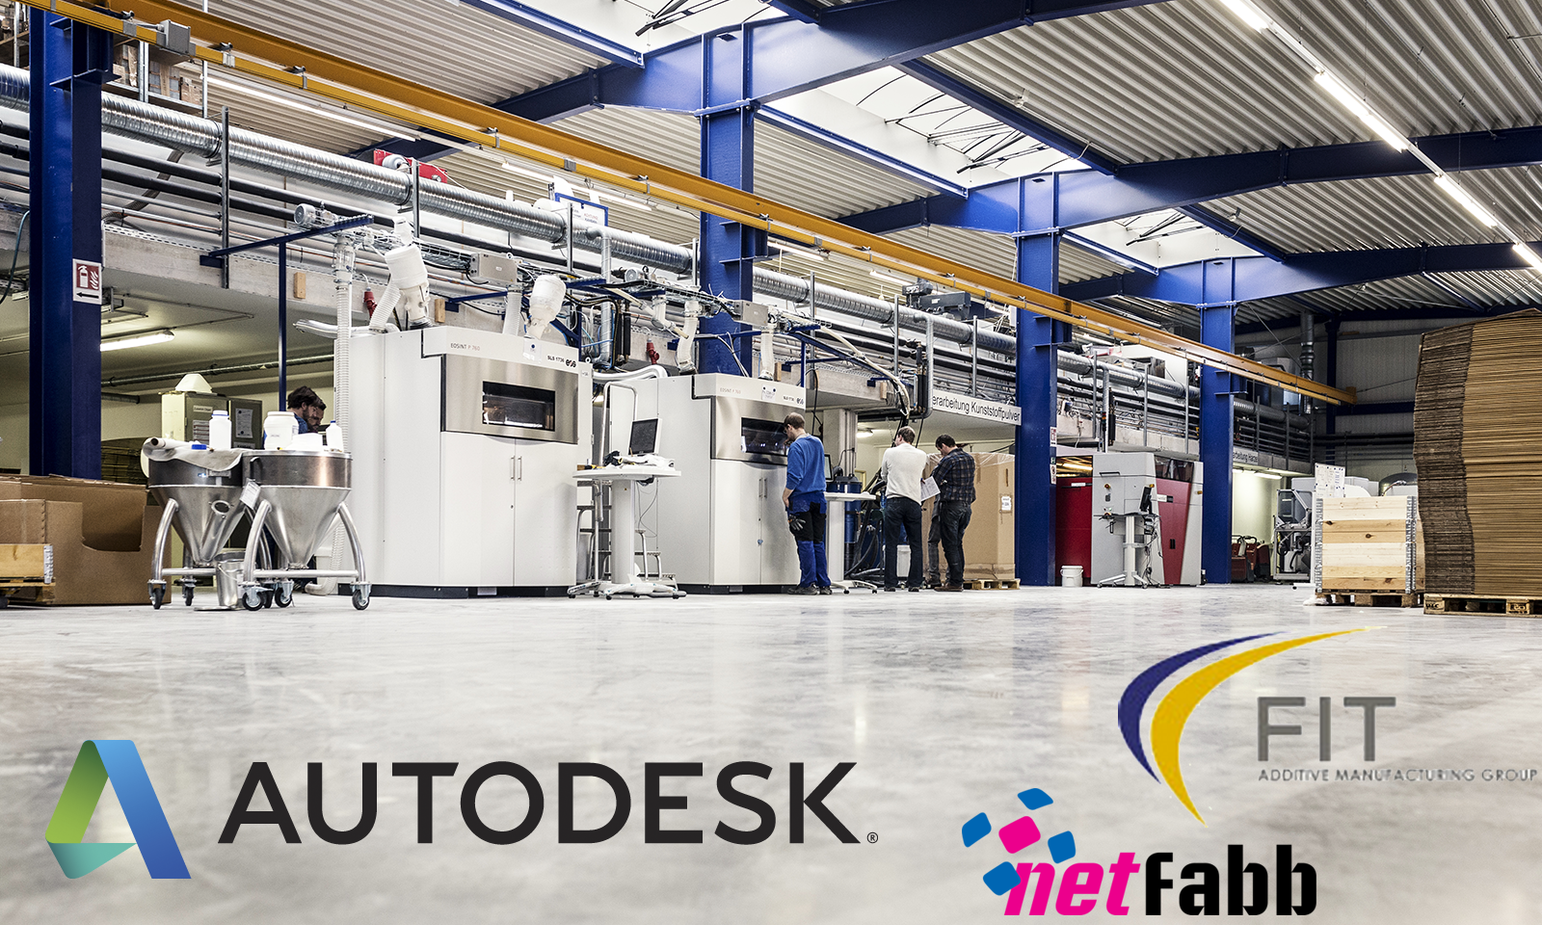 Autodesk Signs Agreement To Acquire Netfabb And Enter Strategic